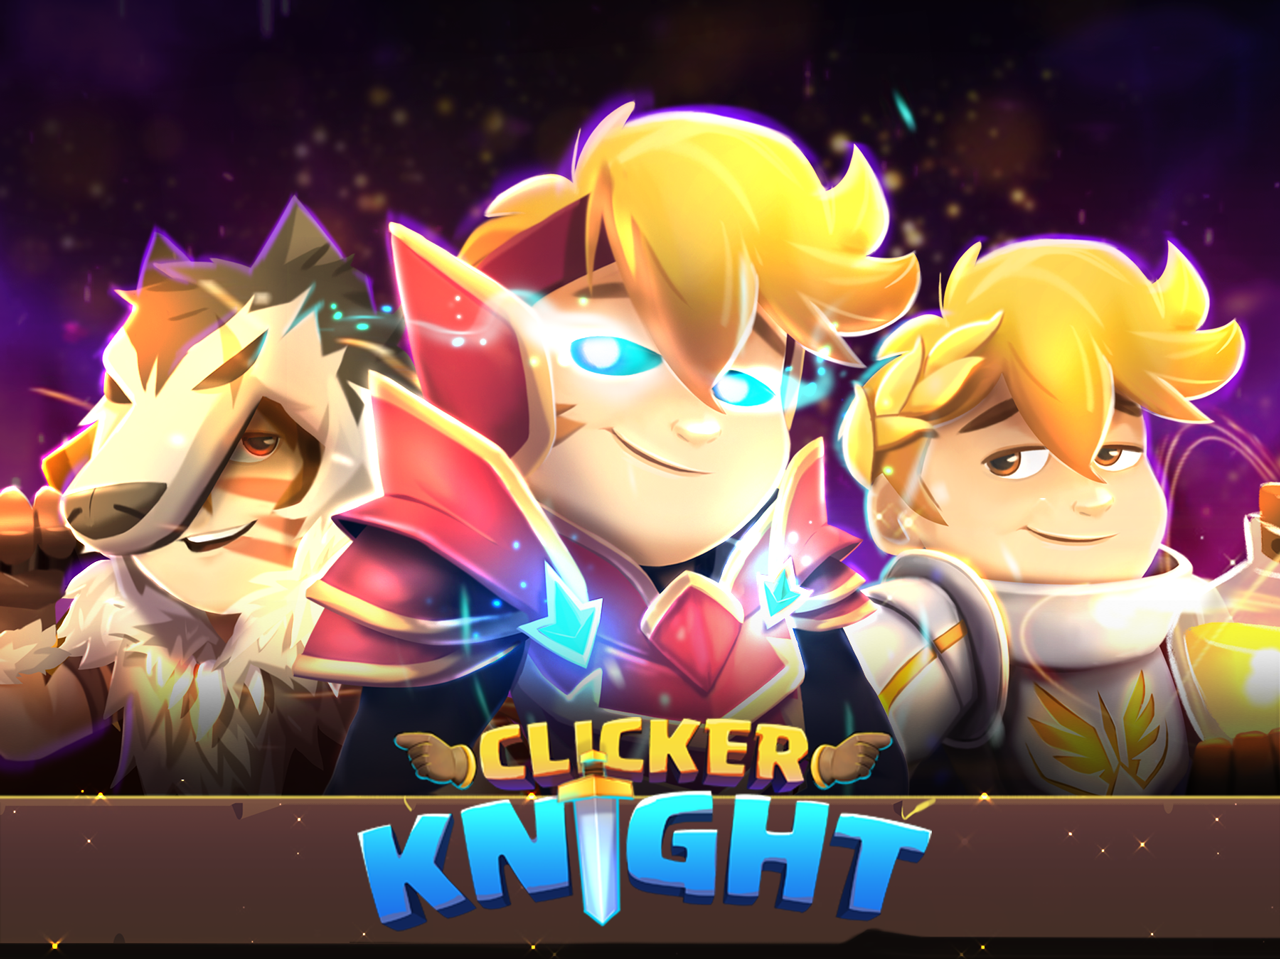 Clicker Knight is an essential idle RPG, out now on Android